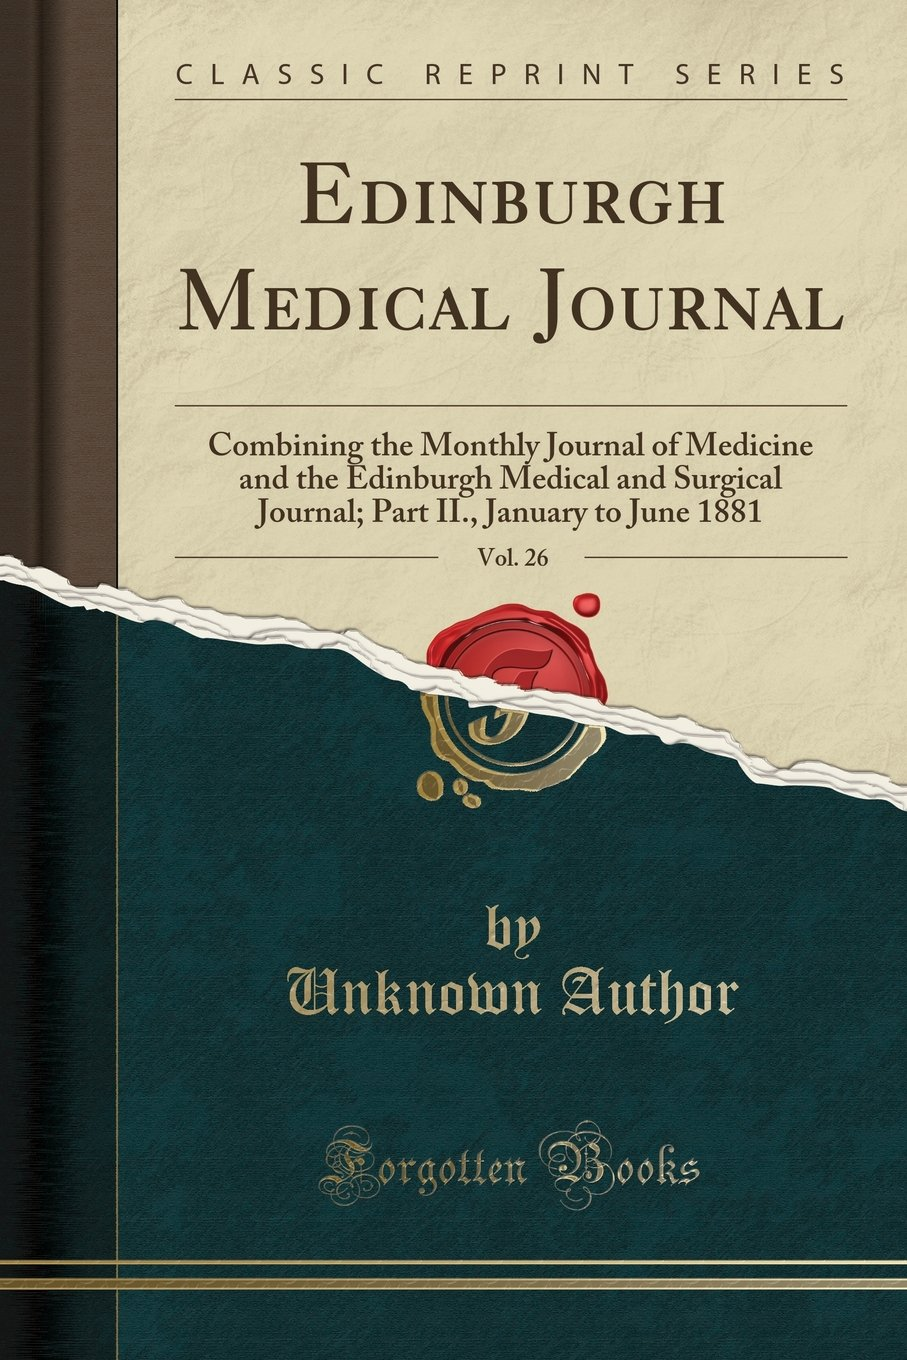 Download Edinburgh Medical Journal, Vol. 26: Combining the Monthly Journal of Medicine and the Edinburgh Medical and Surgical Journal; Part II., January to June 1881 (Classic Reprint) pdf